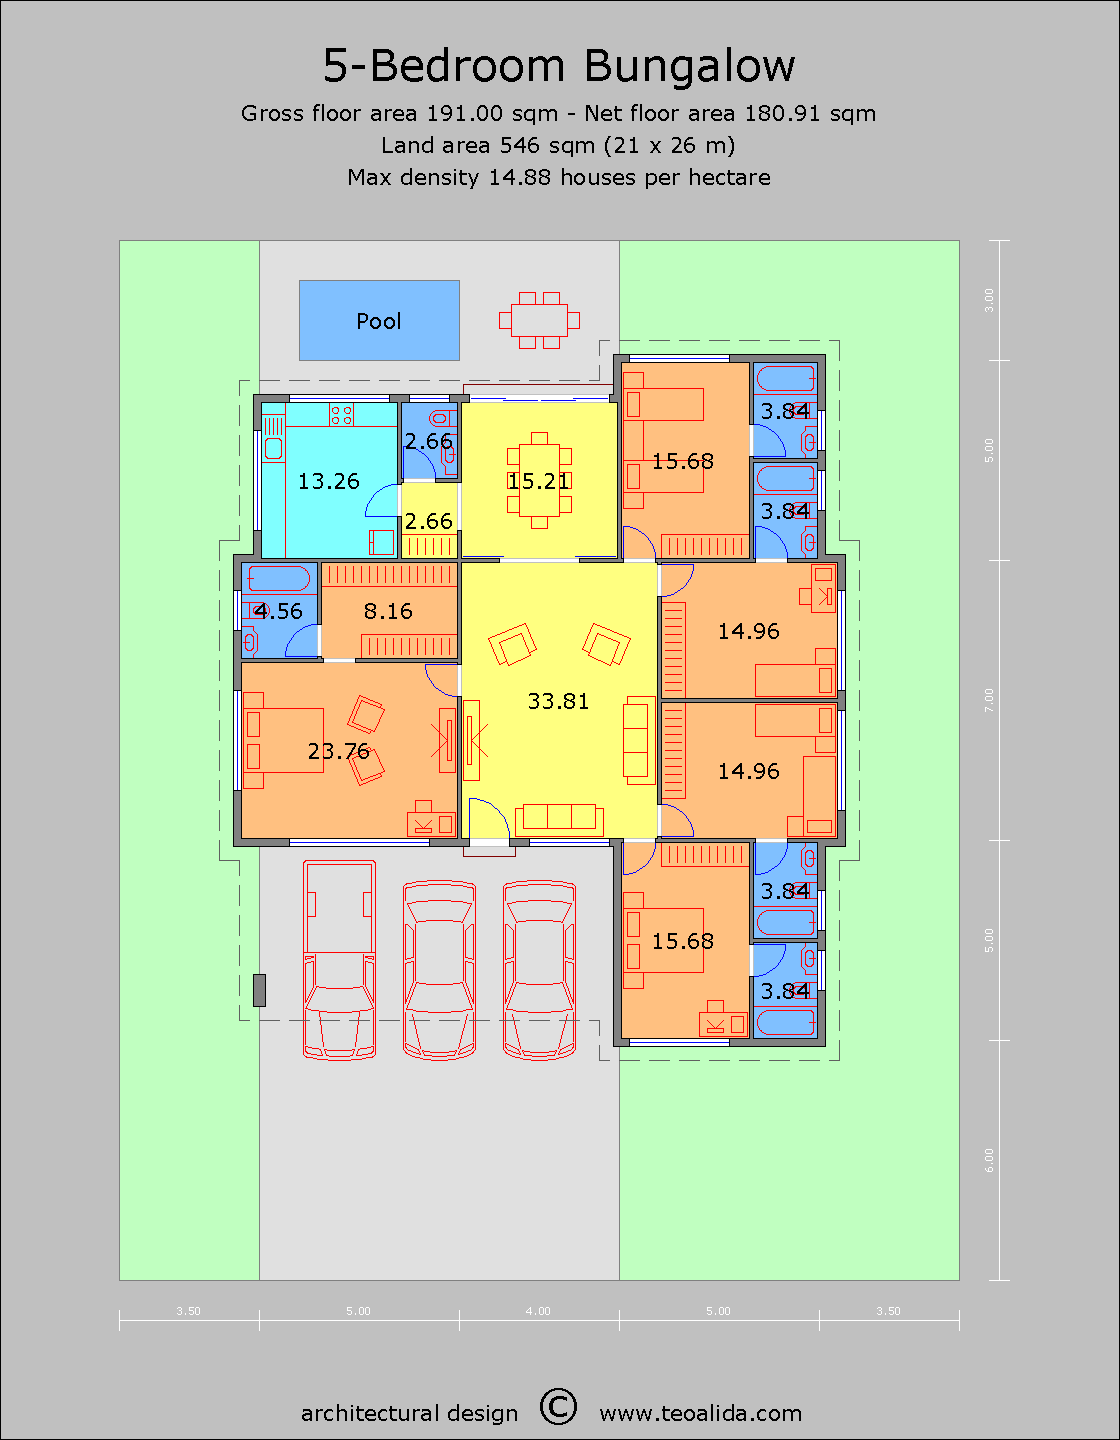 Malaysian Average House Floor Plans on average house interior design, average house bedrooms, average house materials, average house bathrooms, average house layout, average house square footage, average house kitchens, average garage plans, average house room sizes,